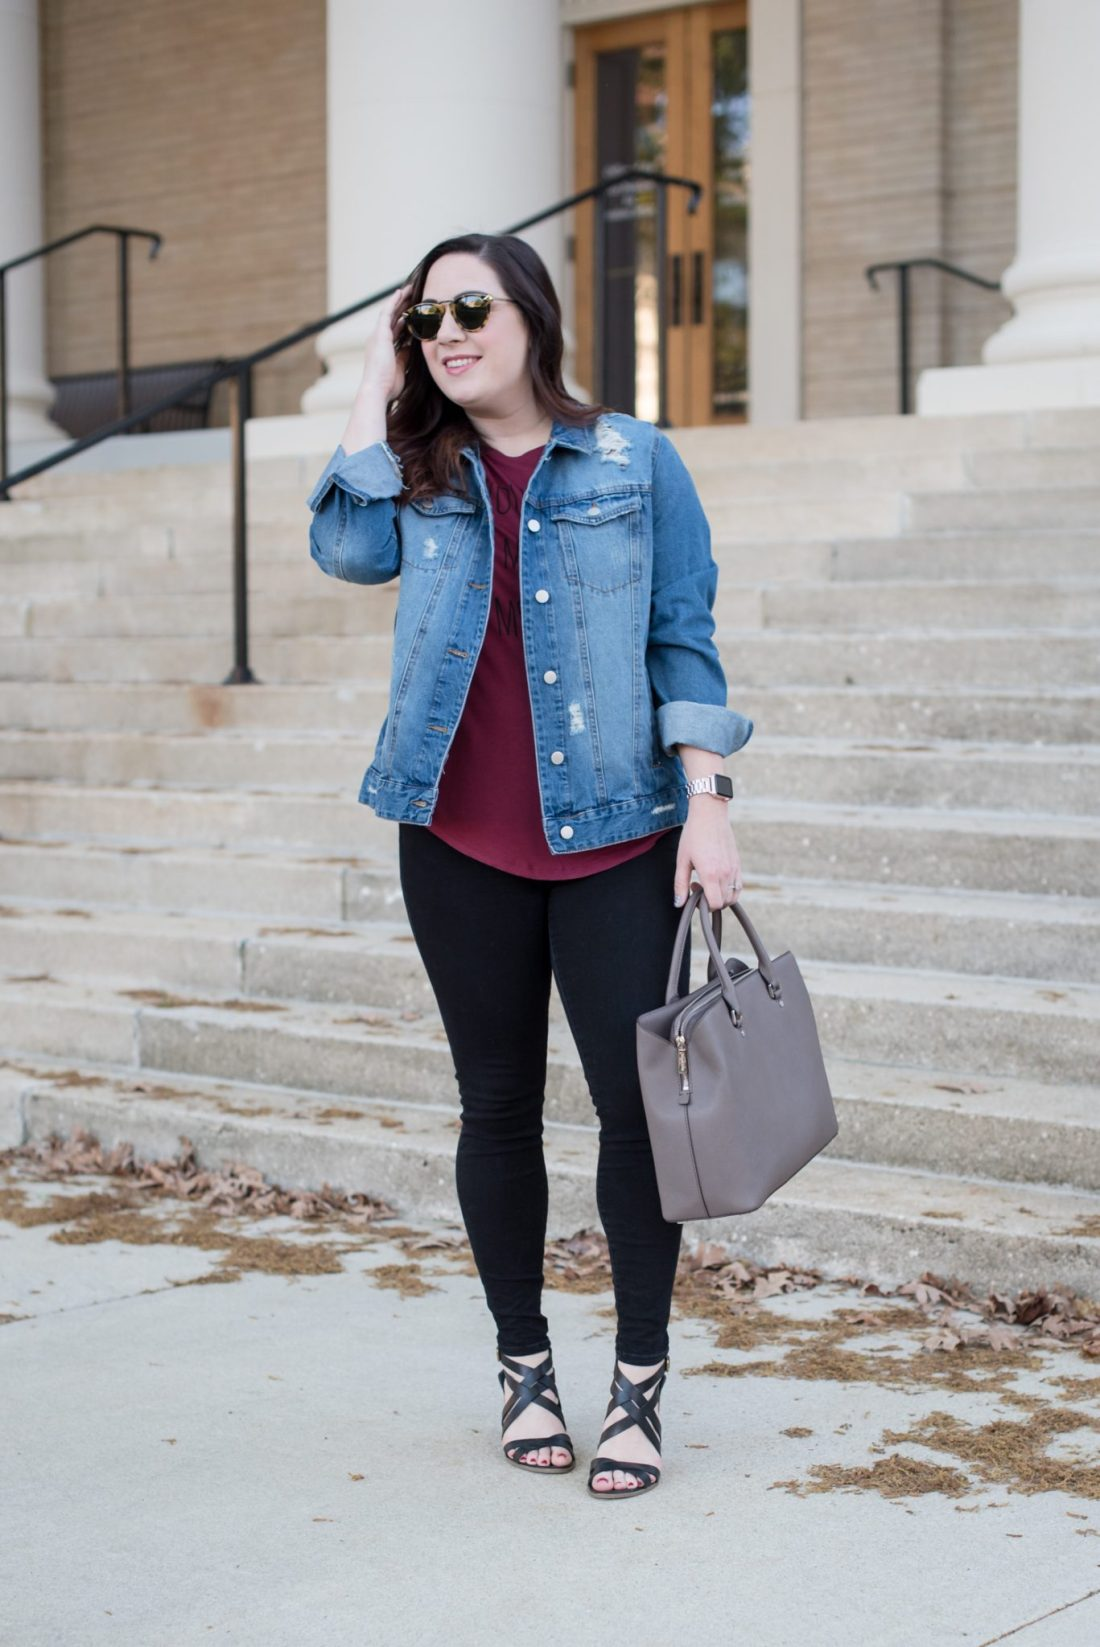 An Oversized Denim Jacket and a Graphic Tee via @missmollymoon